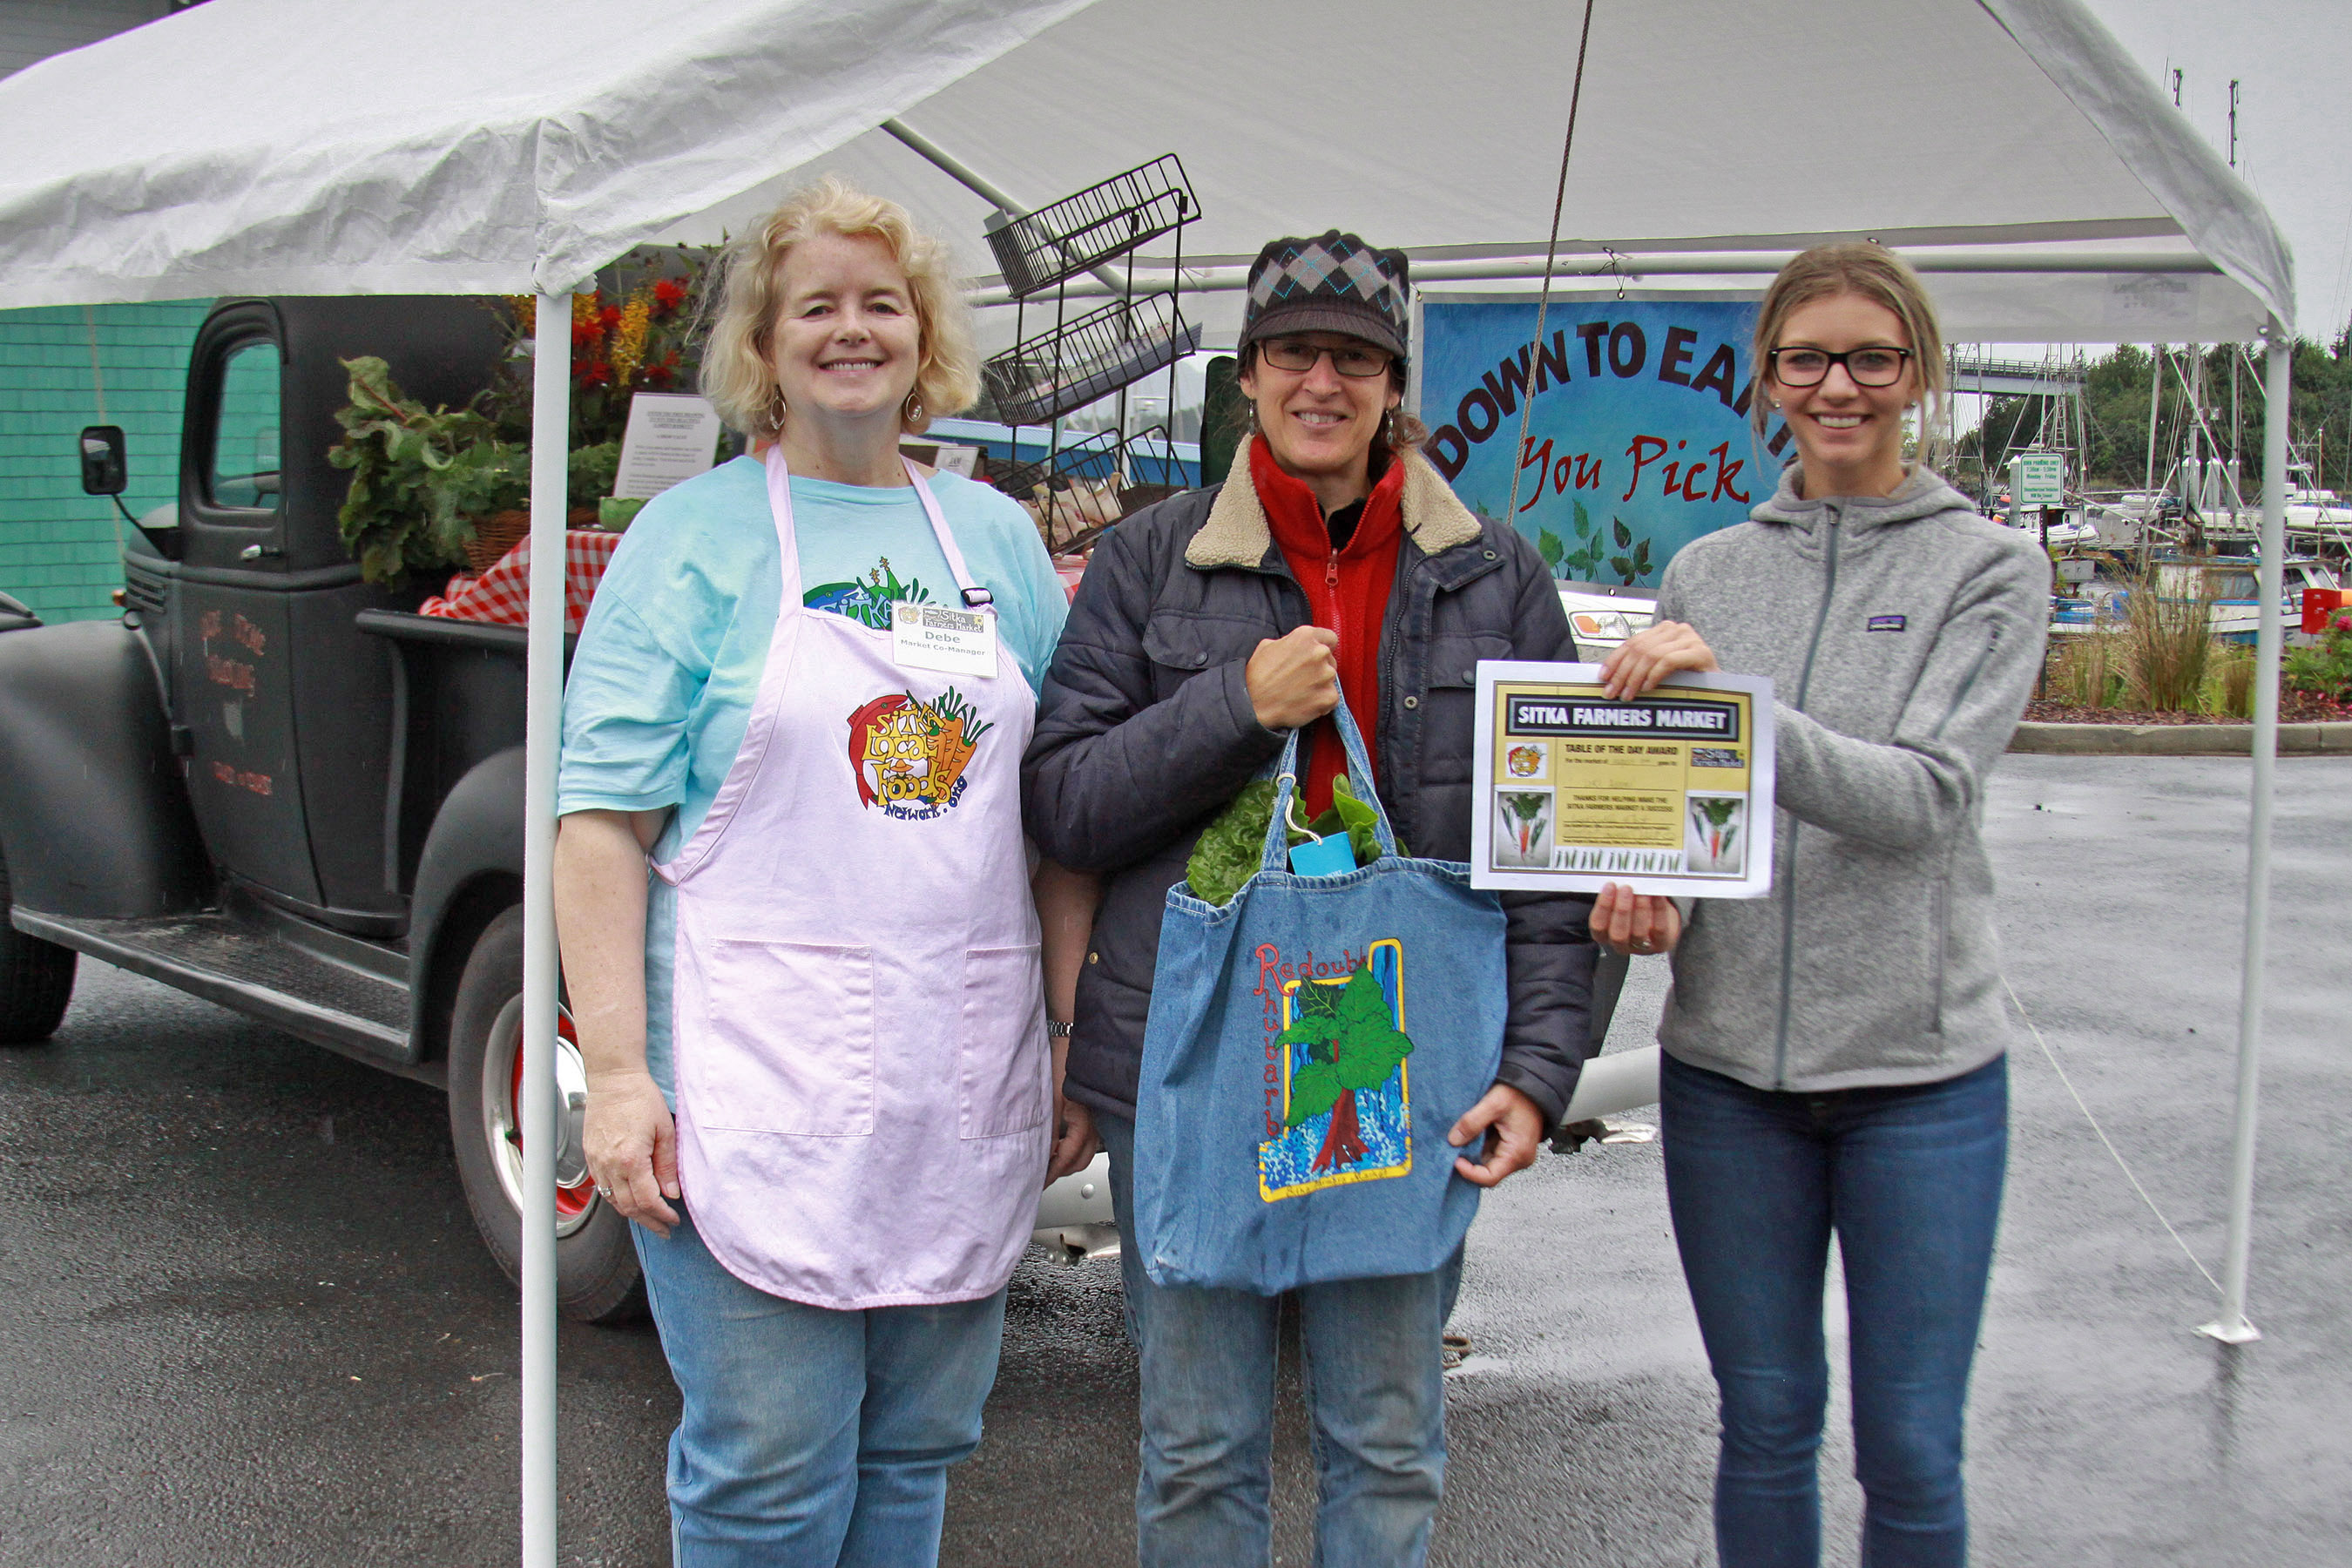 Sitka Farmers Market Co-Managers Debe Brincefield, left, and Ellexis Howey, right, present the Table Of The Day Award to Lori Adams of Down-To-Earth U-Pick Garden at the fourth Sitka Farmers Market of the 2014 summer on Saturday, Aug. 9, at the Alaska Native Brotherhood Founders Hall in Sitka. Lori has been selling fresh produce, jams and jellies, and her local book on gardening at the Sitka Farmers Market for several years. She received a gift bag with fresh greens, fresh rhubarb, a pair of earrings, a dozen eggs, and a copy of the Alaska Farmers Market Cookbook. This is the seventh year of Sitka Farmers Markets, hosted by the Sitka Local Foods Network. The next market is from 10 a.m. to 1 p.m. on Saturday, Aug. 23, at the Alaska Native Brotherhood Founders Hall, 235 Katlian St. Check our website to learn about our new bus service to the market. For more information about the Sitka Farmers Markets and Sitka Local Foods Network, go to http://www.sitkalocalfoodsnetwork.org/, or check out our Facebook page at https://www.facebook.com/SitkaLocalFoodsNetwork. (PHOTO COURTESY OF SITKA LOCAL FOODS NETWORK)